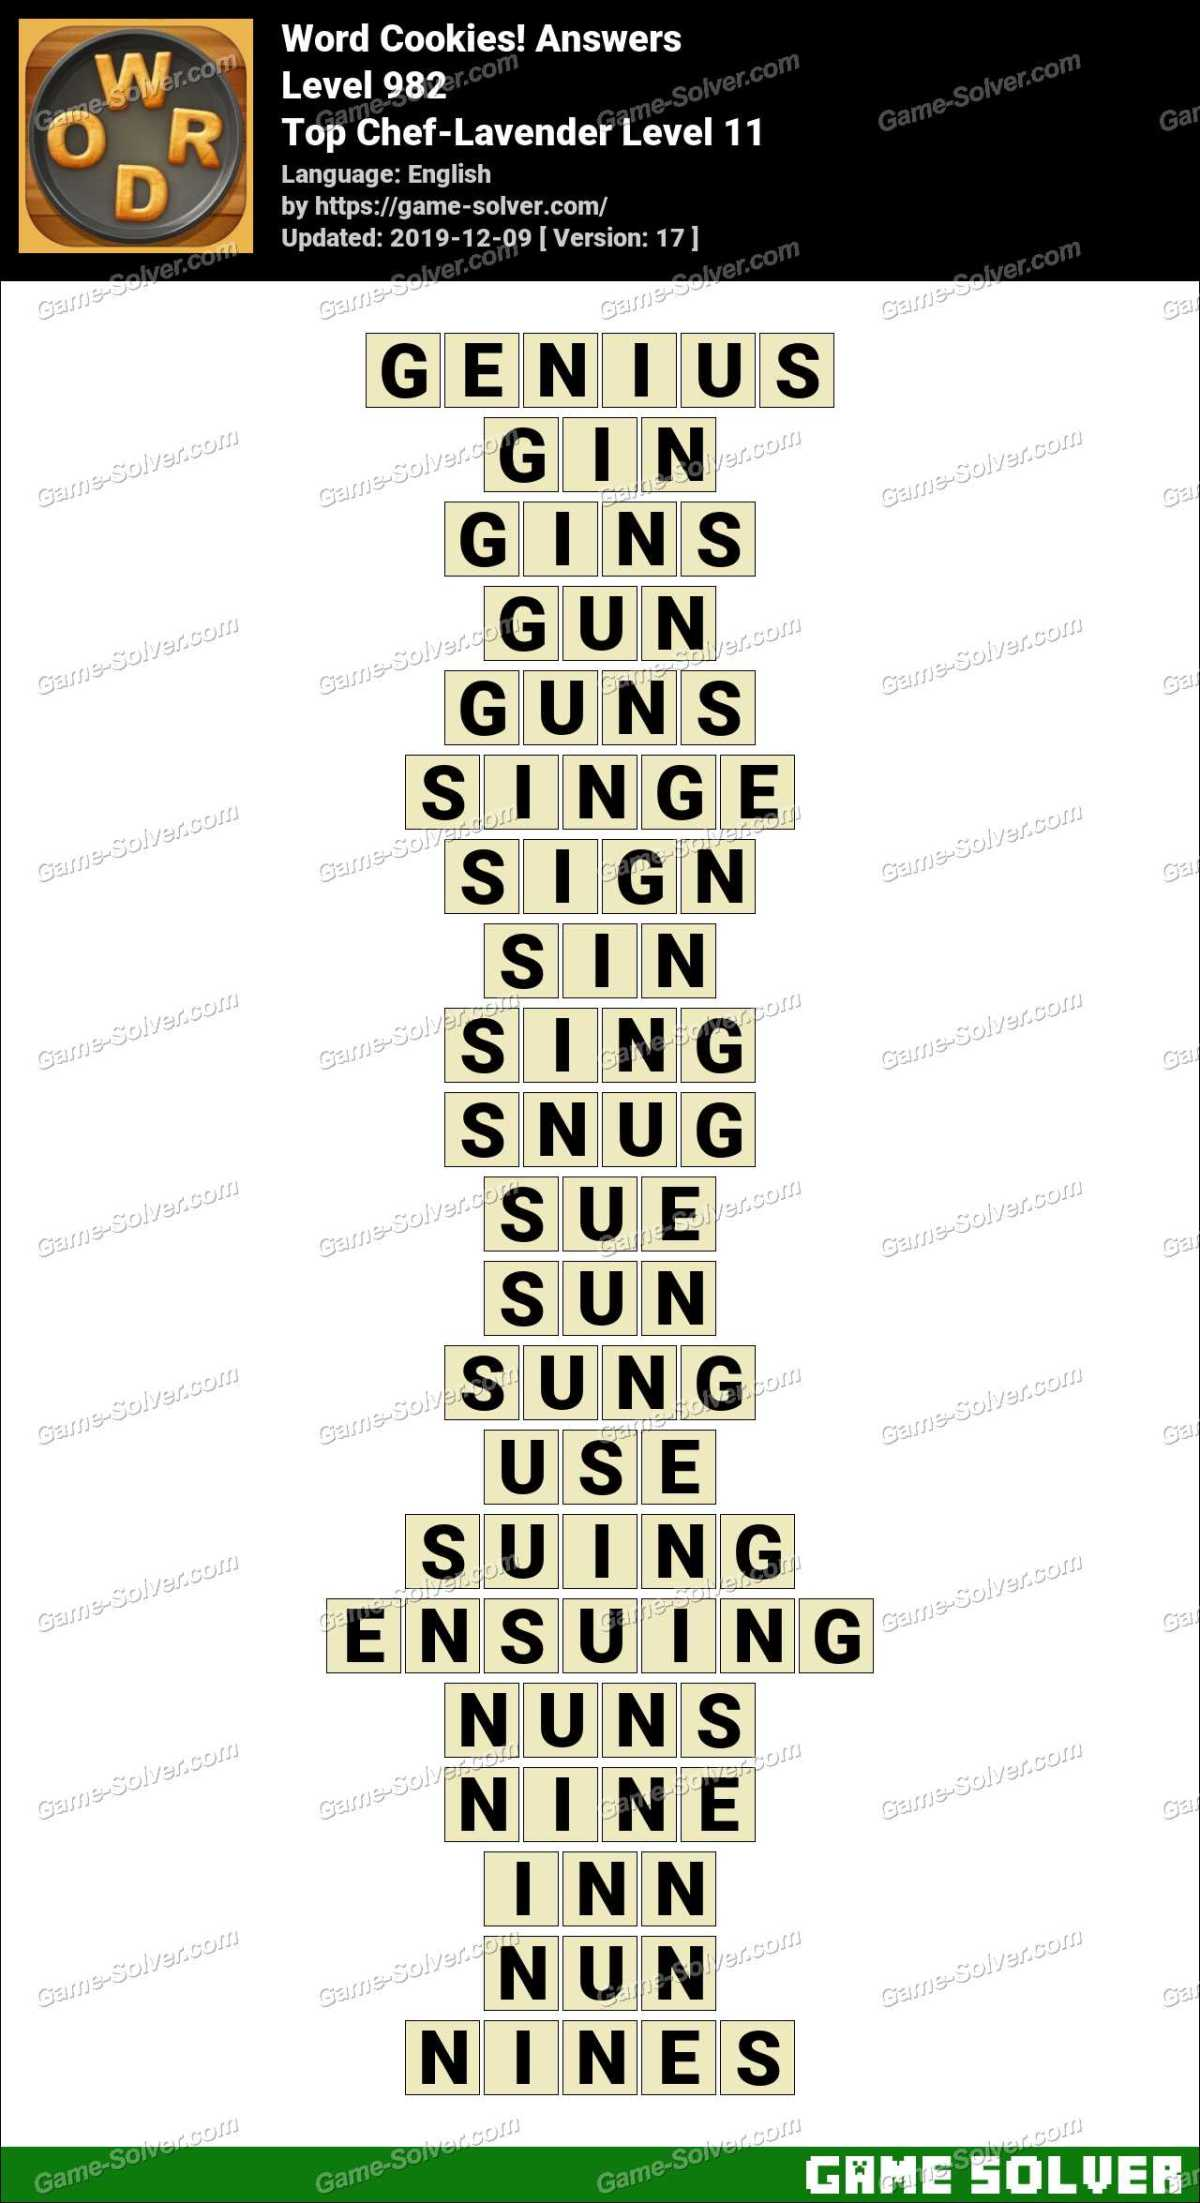 Word Cookies Top Chef-Lavender Level 11 Answers